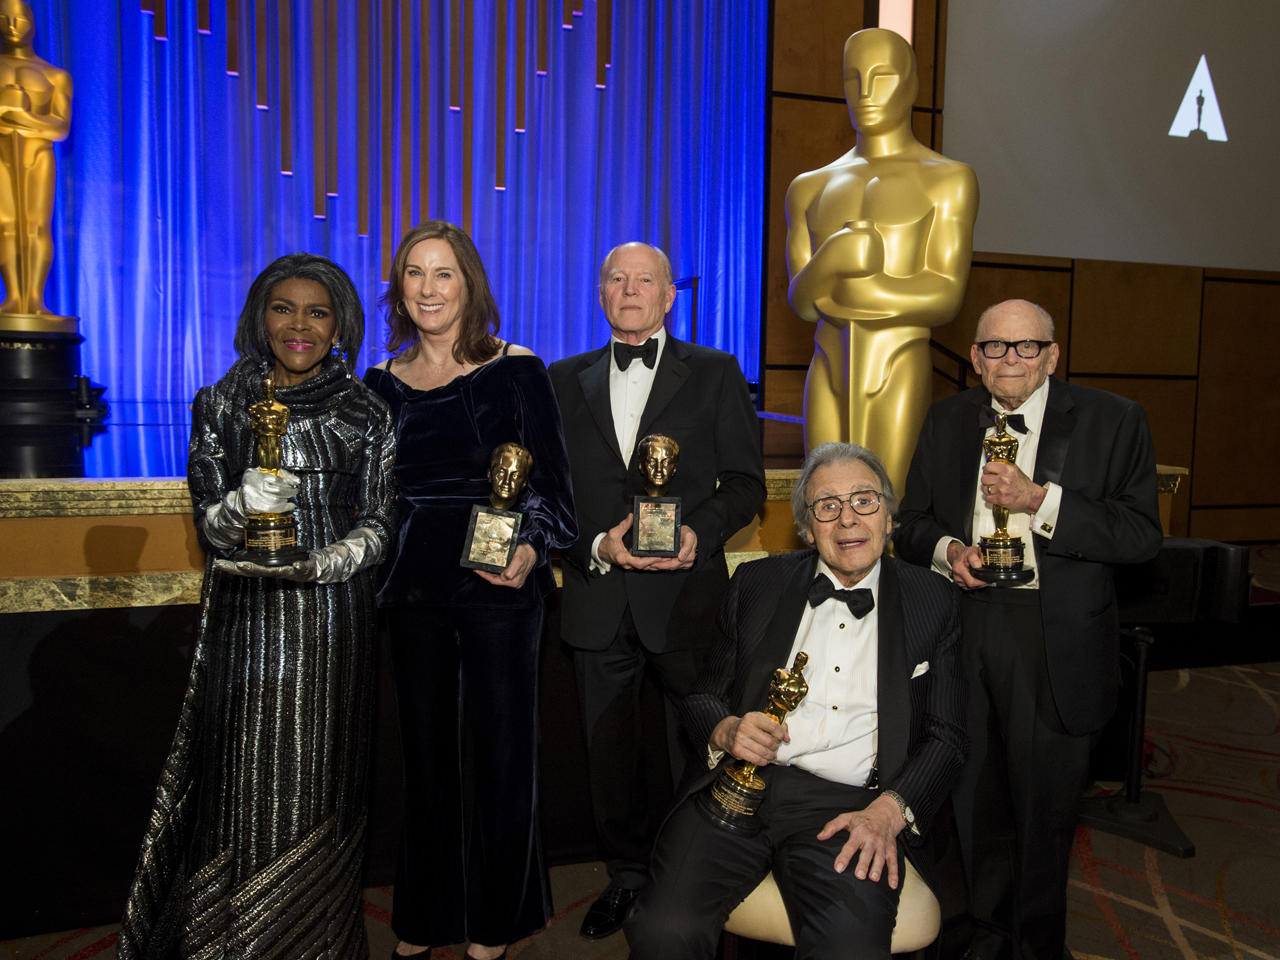 Academy presents Governors Awards to actress Cicely Tyson, producers Kathleen Kennedy and Frank Marshall, composer Lalo Schifrin, publicist Marvin Levy - CBS News